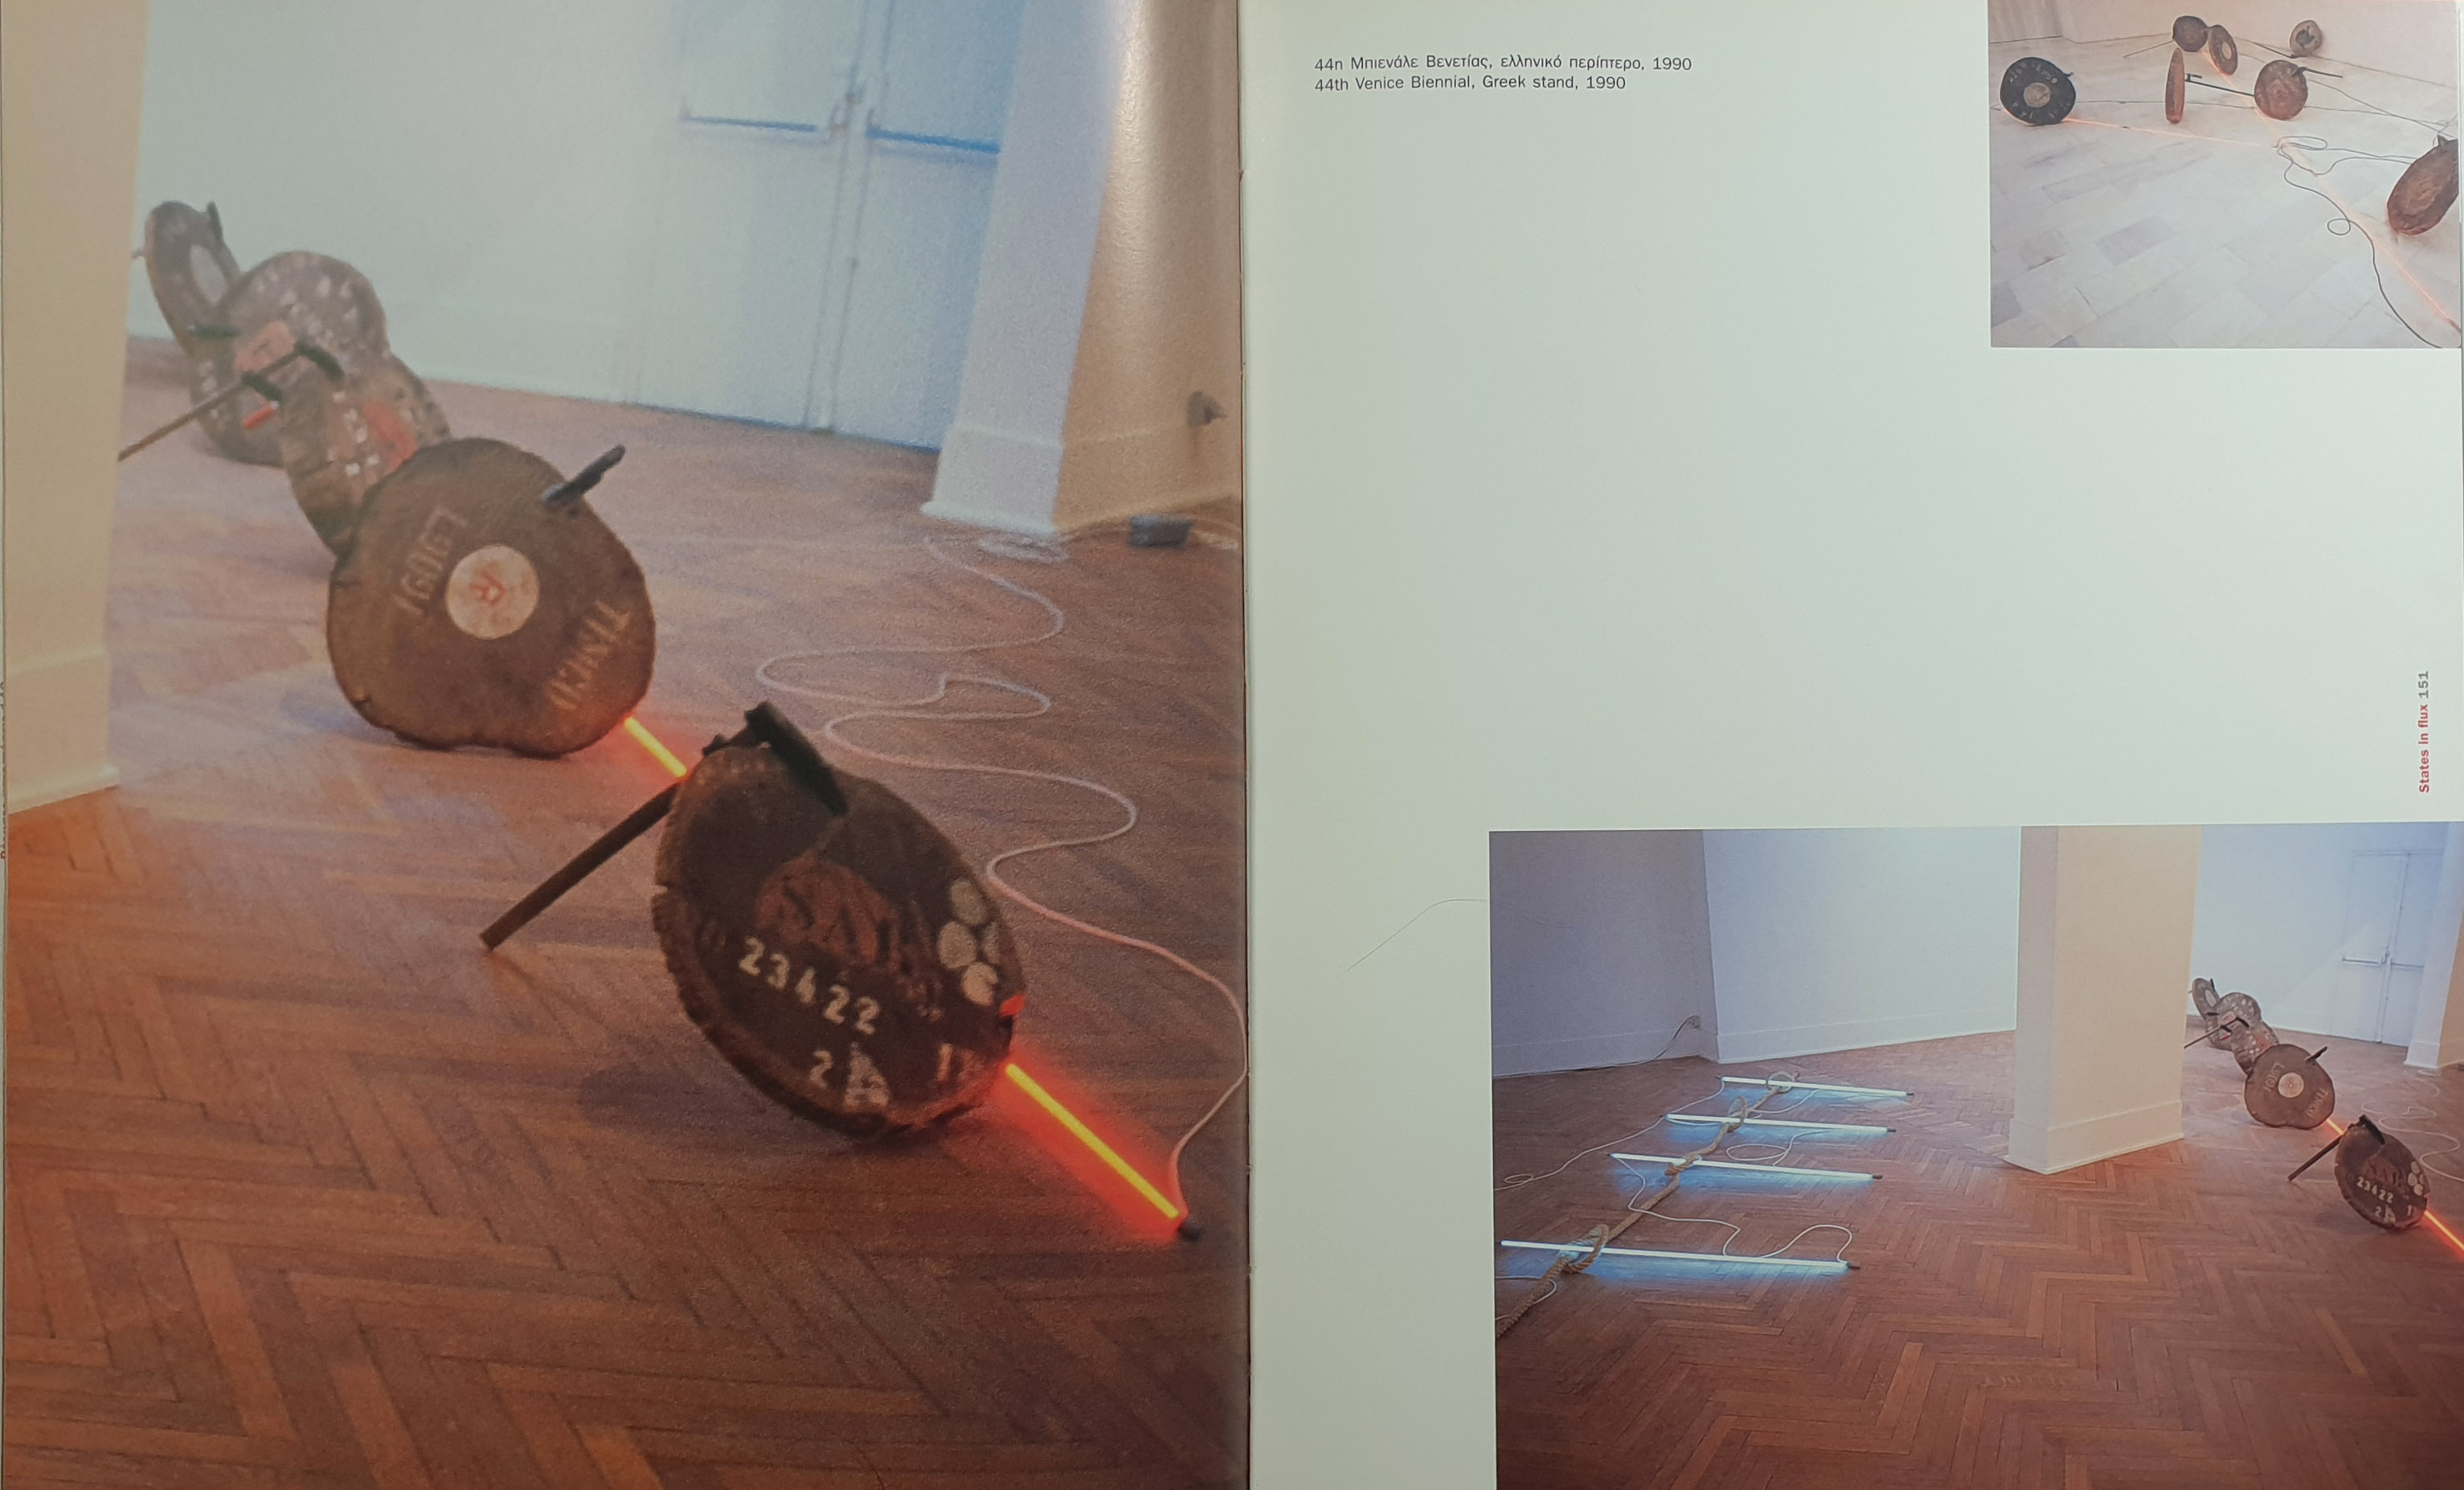 3.2.B (6499) YIANNIS BOUTEAS STATES IN FLUX 1970 2004 - THE TRAIL OF TIME(Image 2)